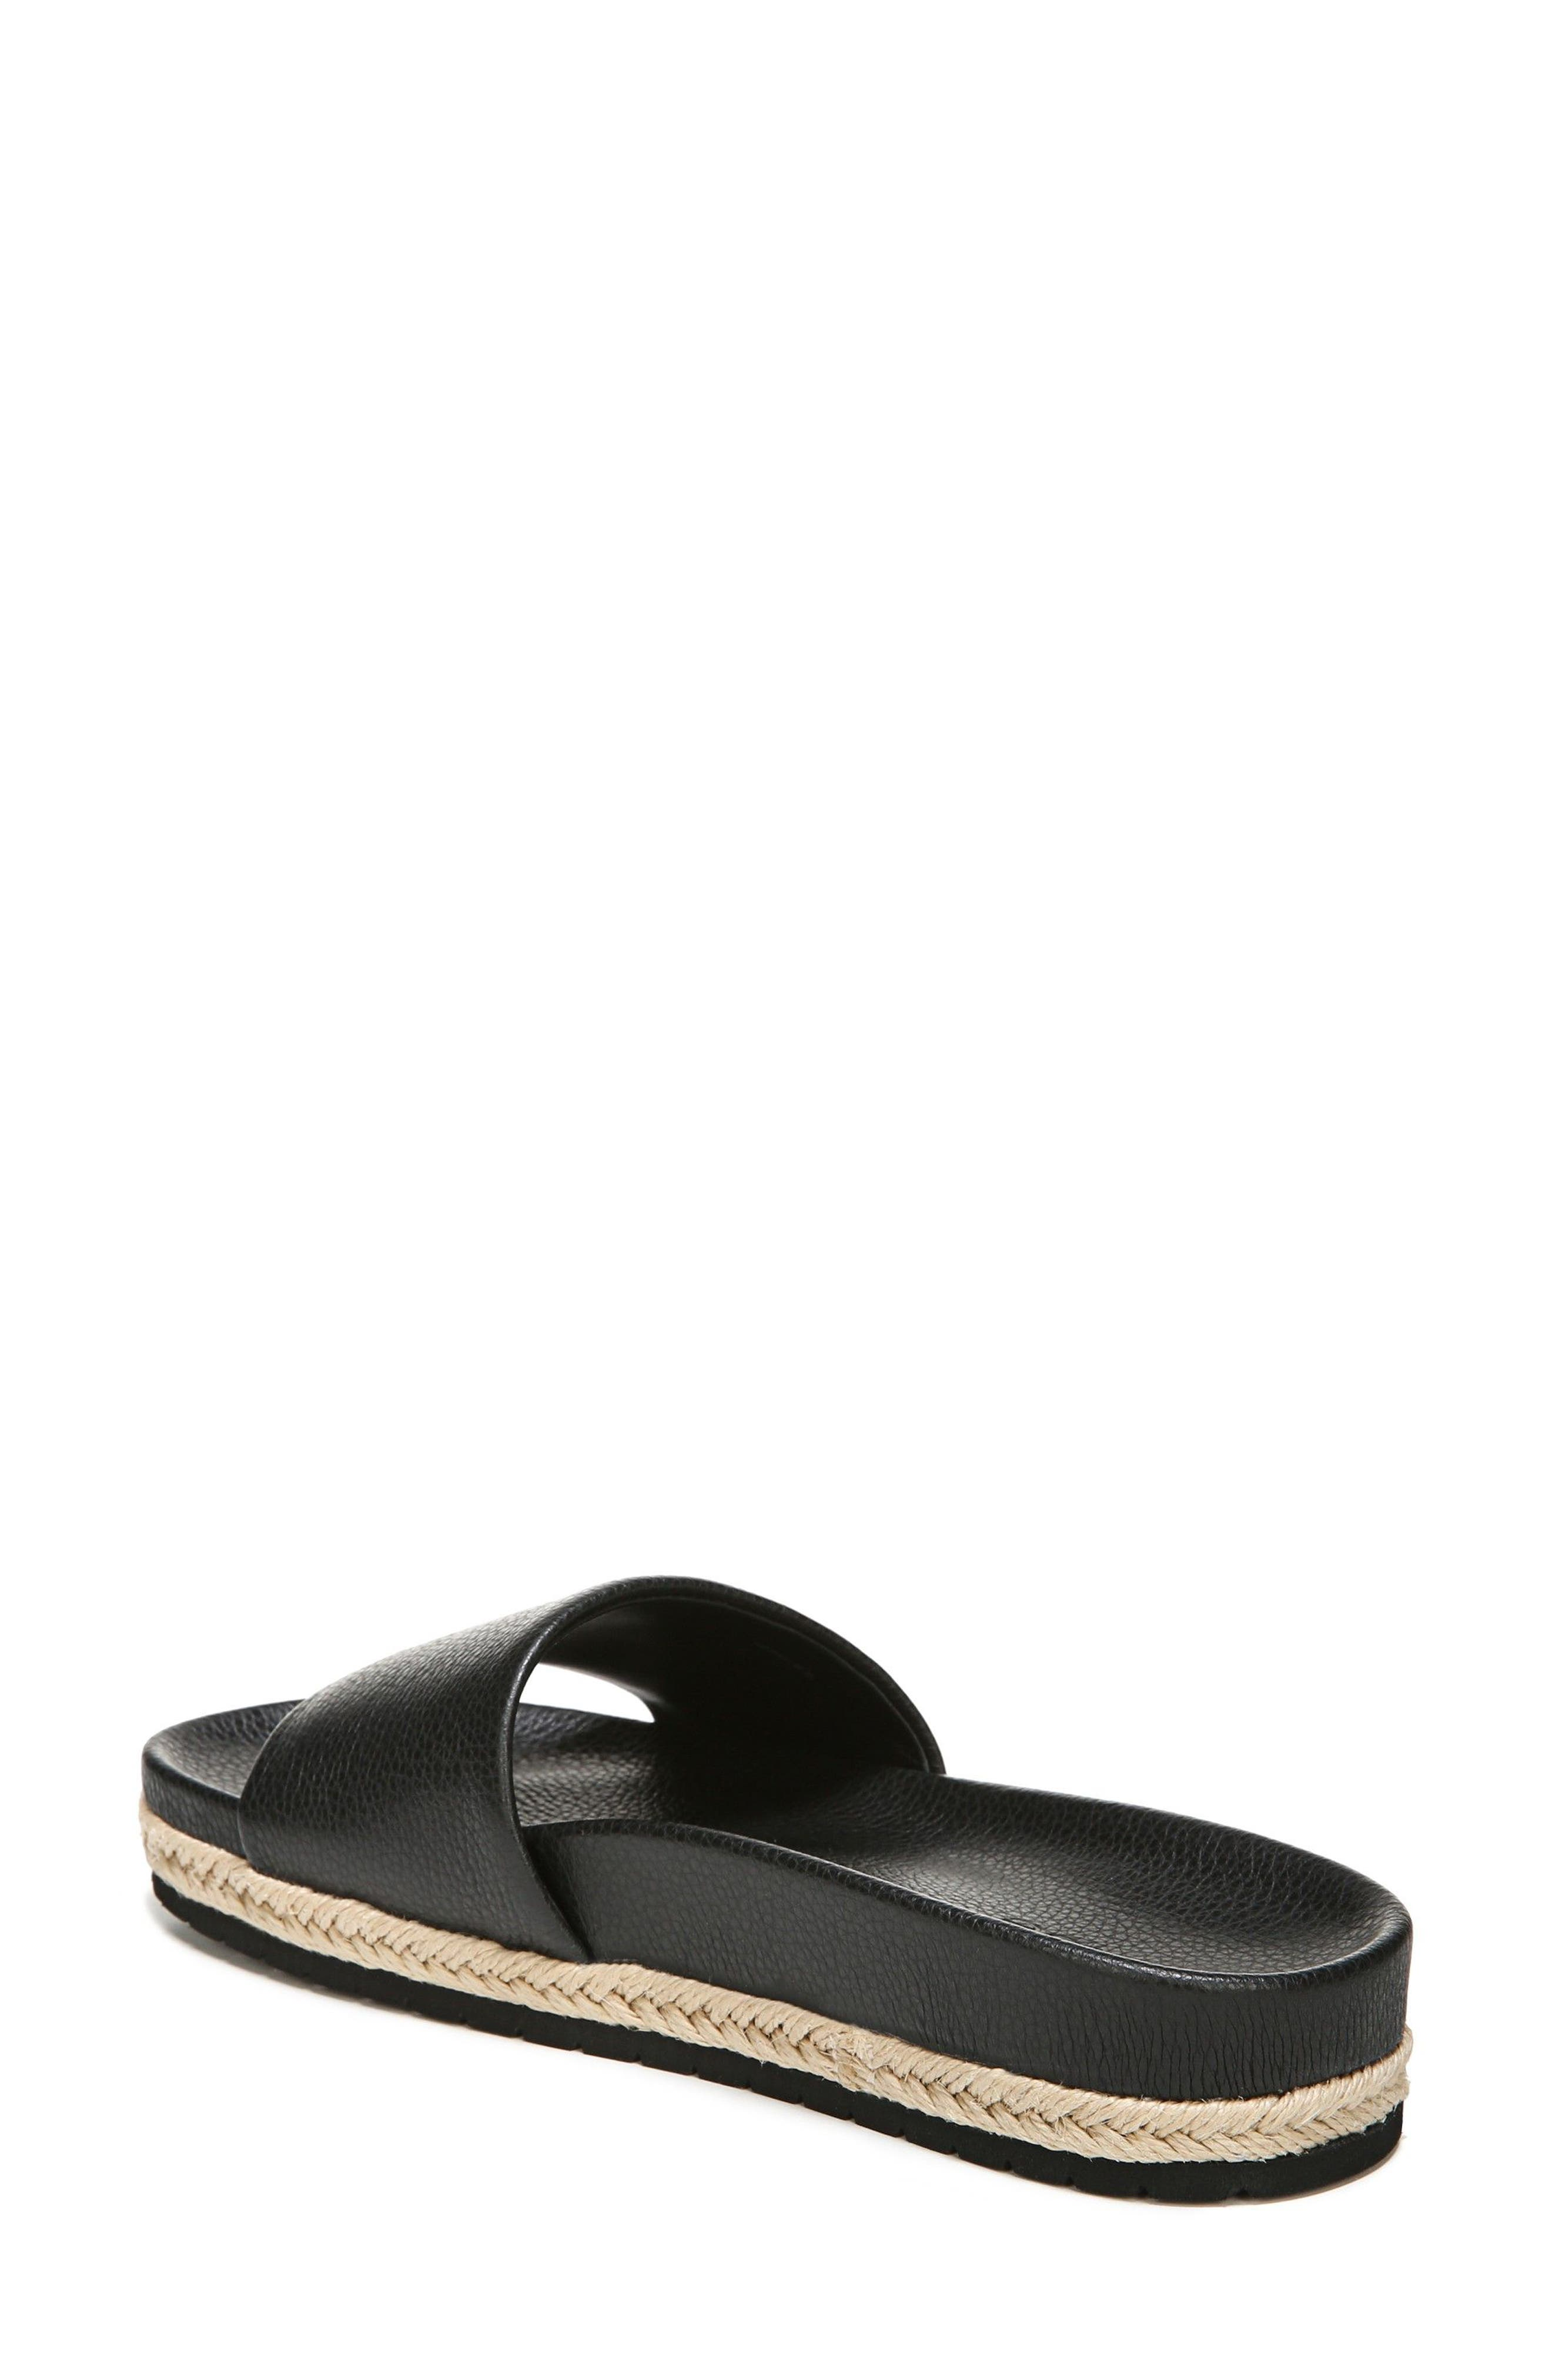 Aurelia Slide Sandal,                             Alternate thumbnail 2, color,                             001